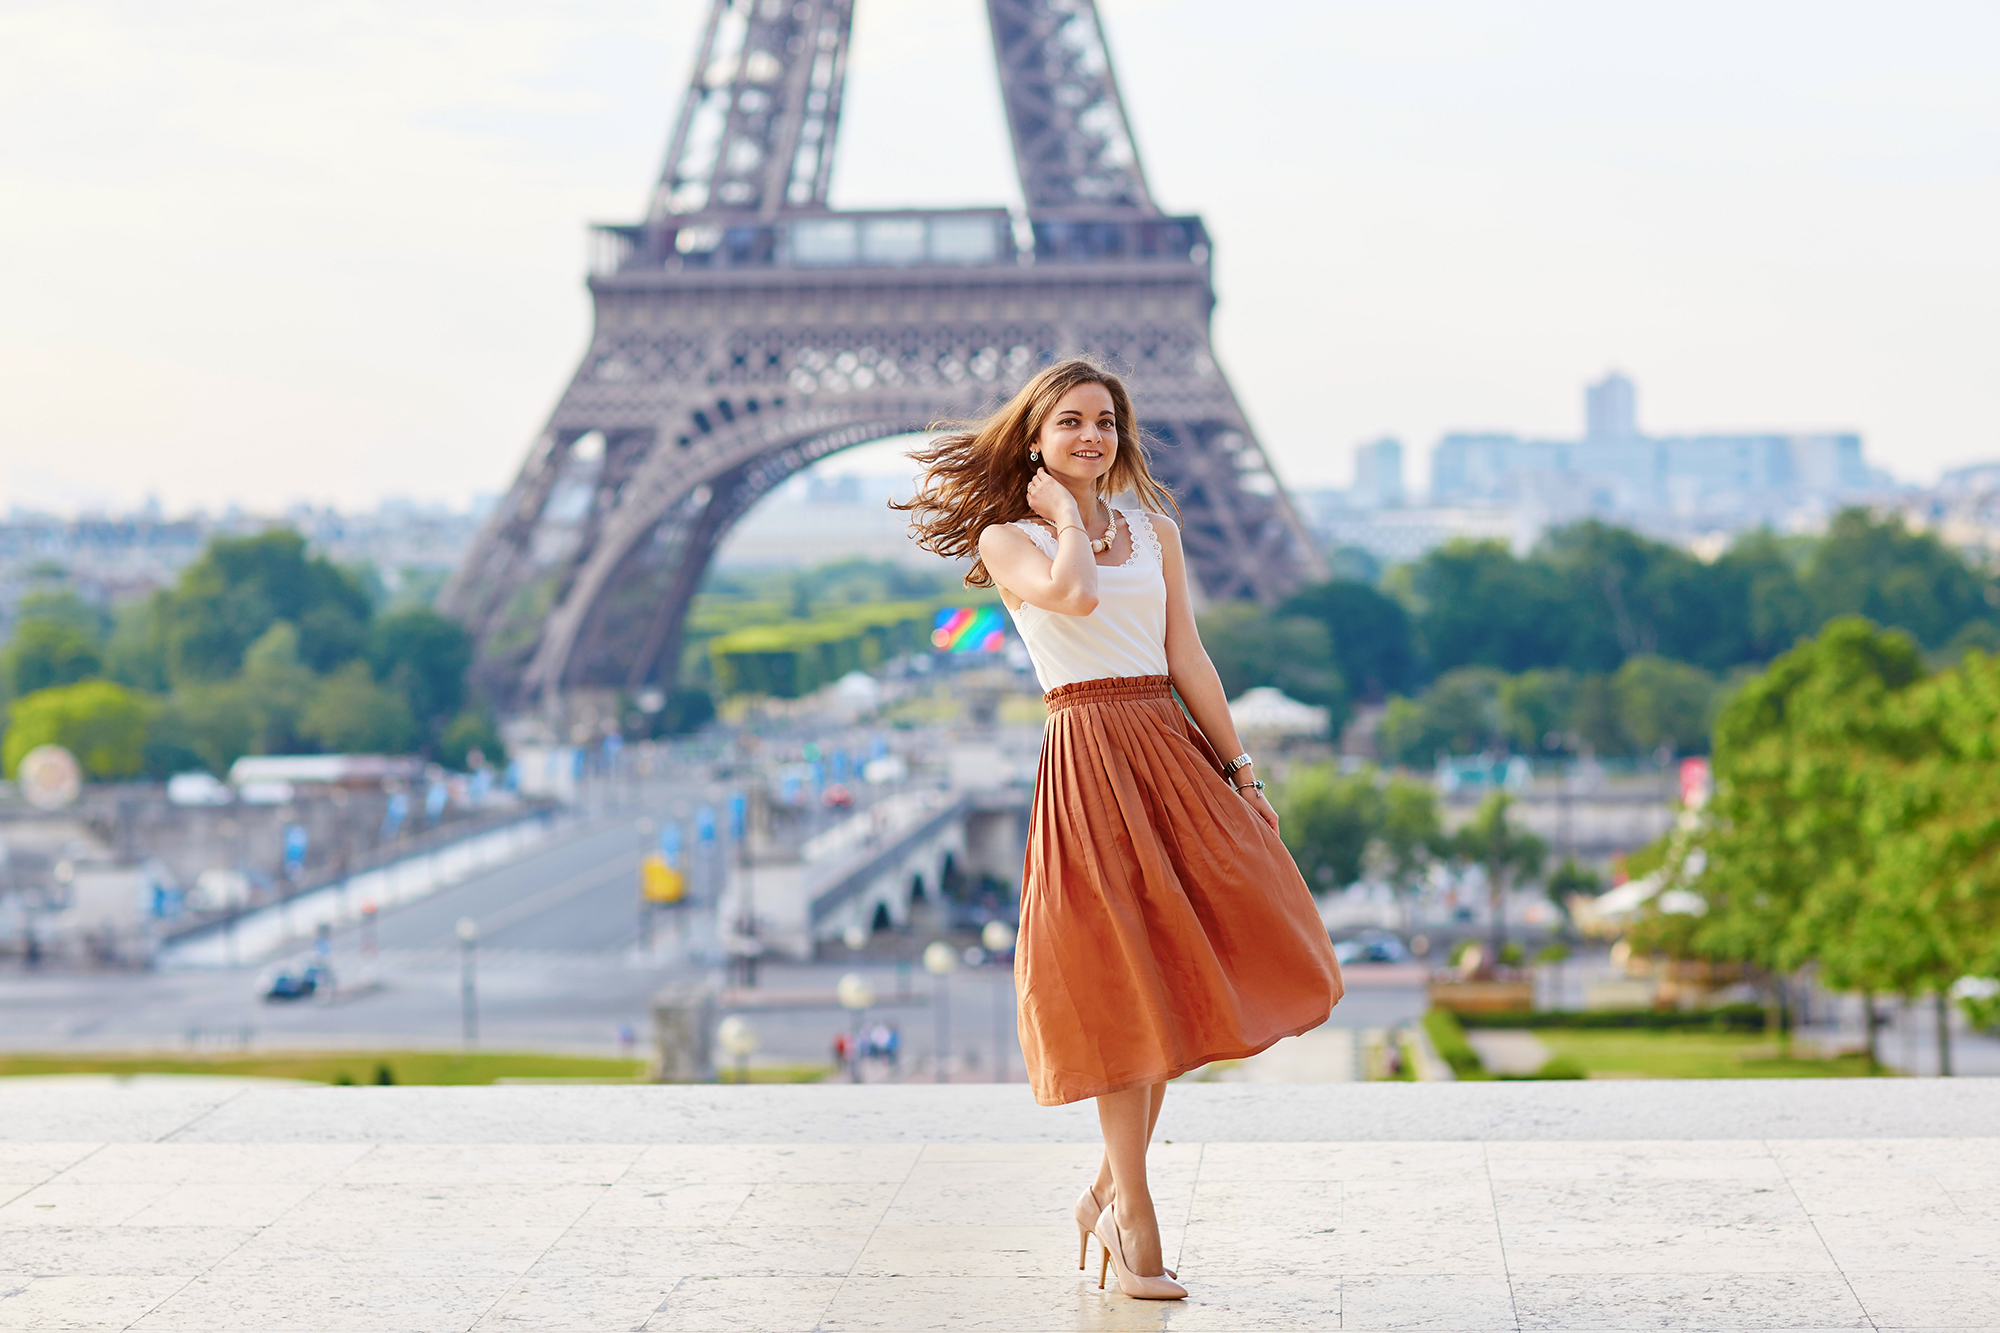 La ville de Paris récompense les talents de la mode